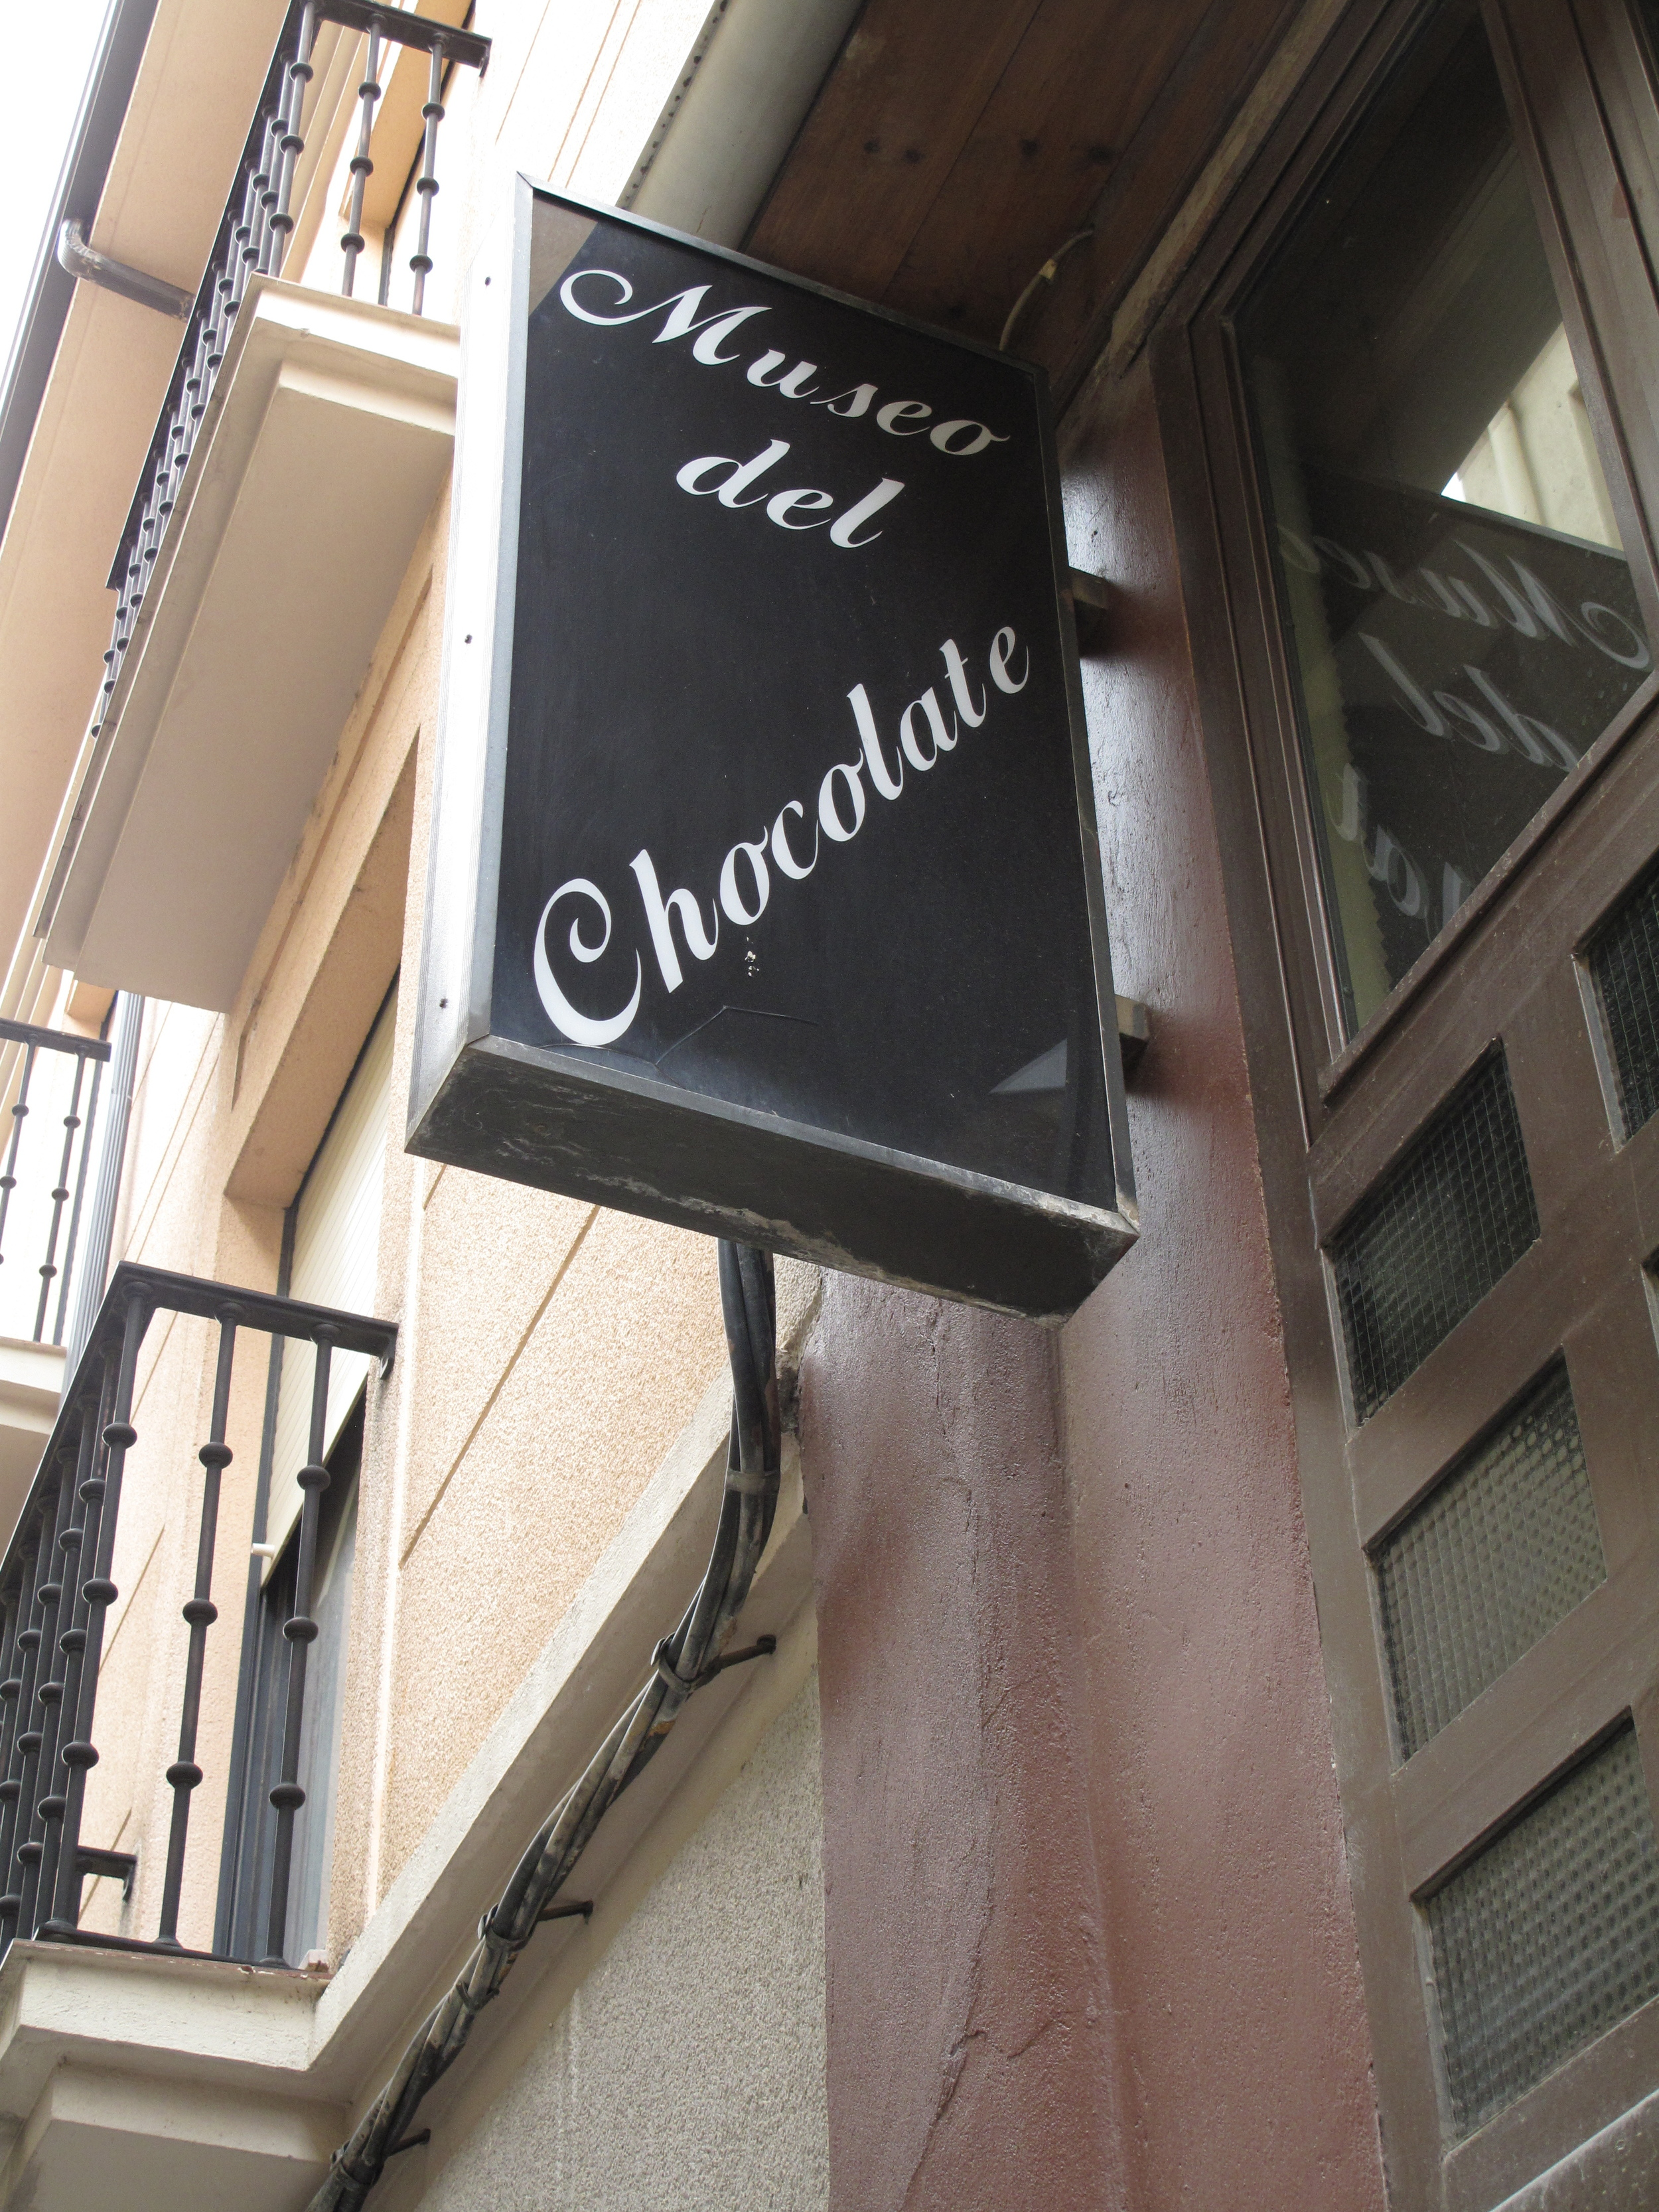 Still working on my foot problems, I took the bus to Astorga. Lo and behold there was a chocolate museum! I never pass up chocolate!